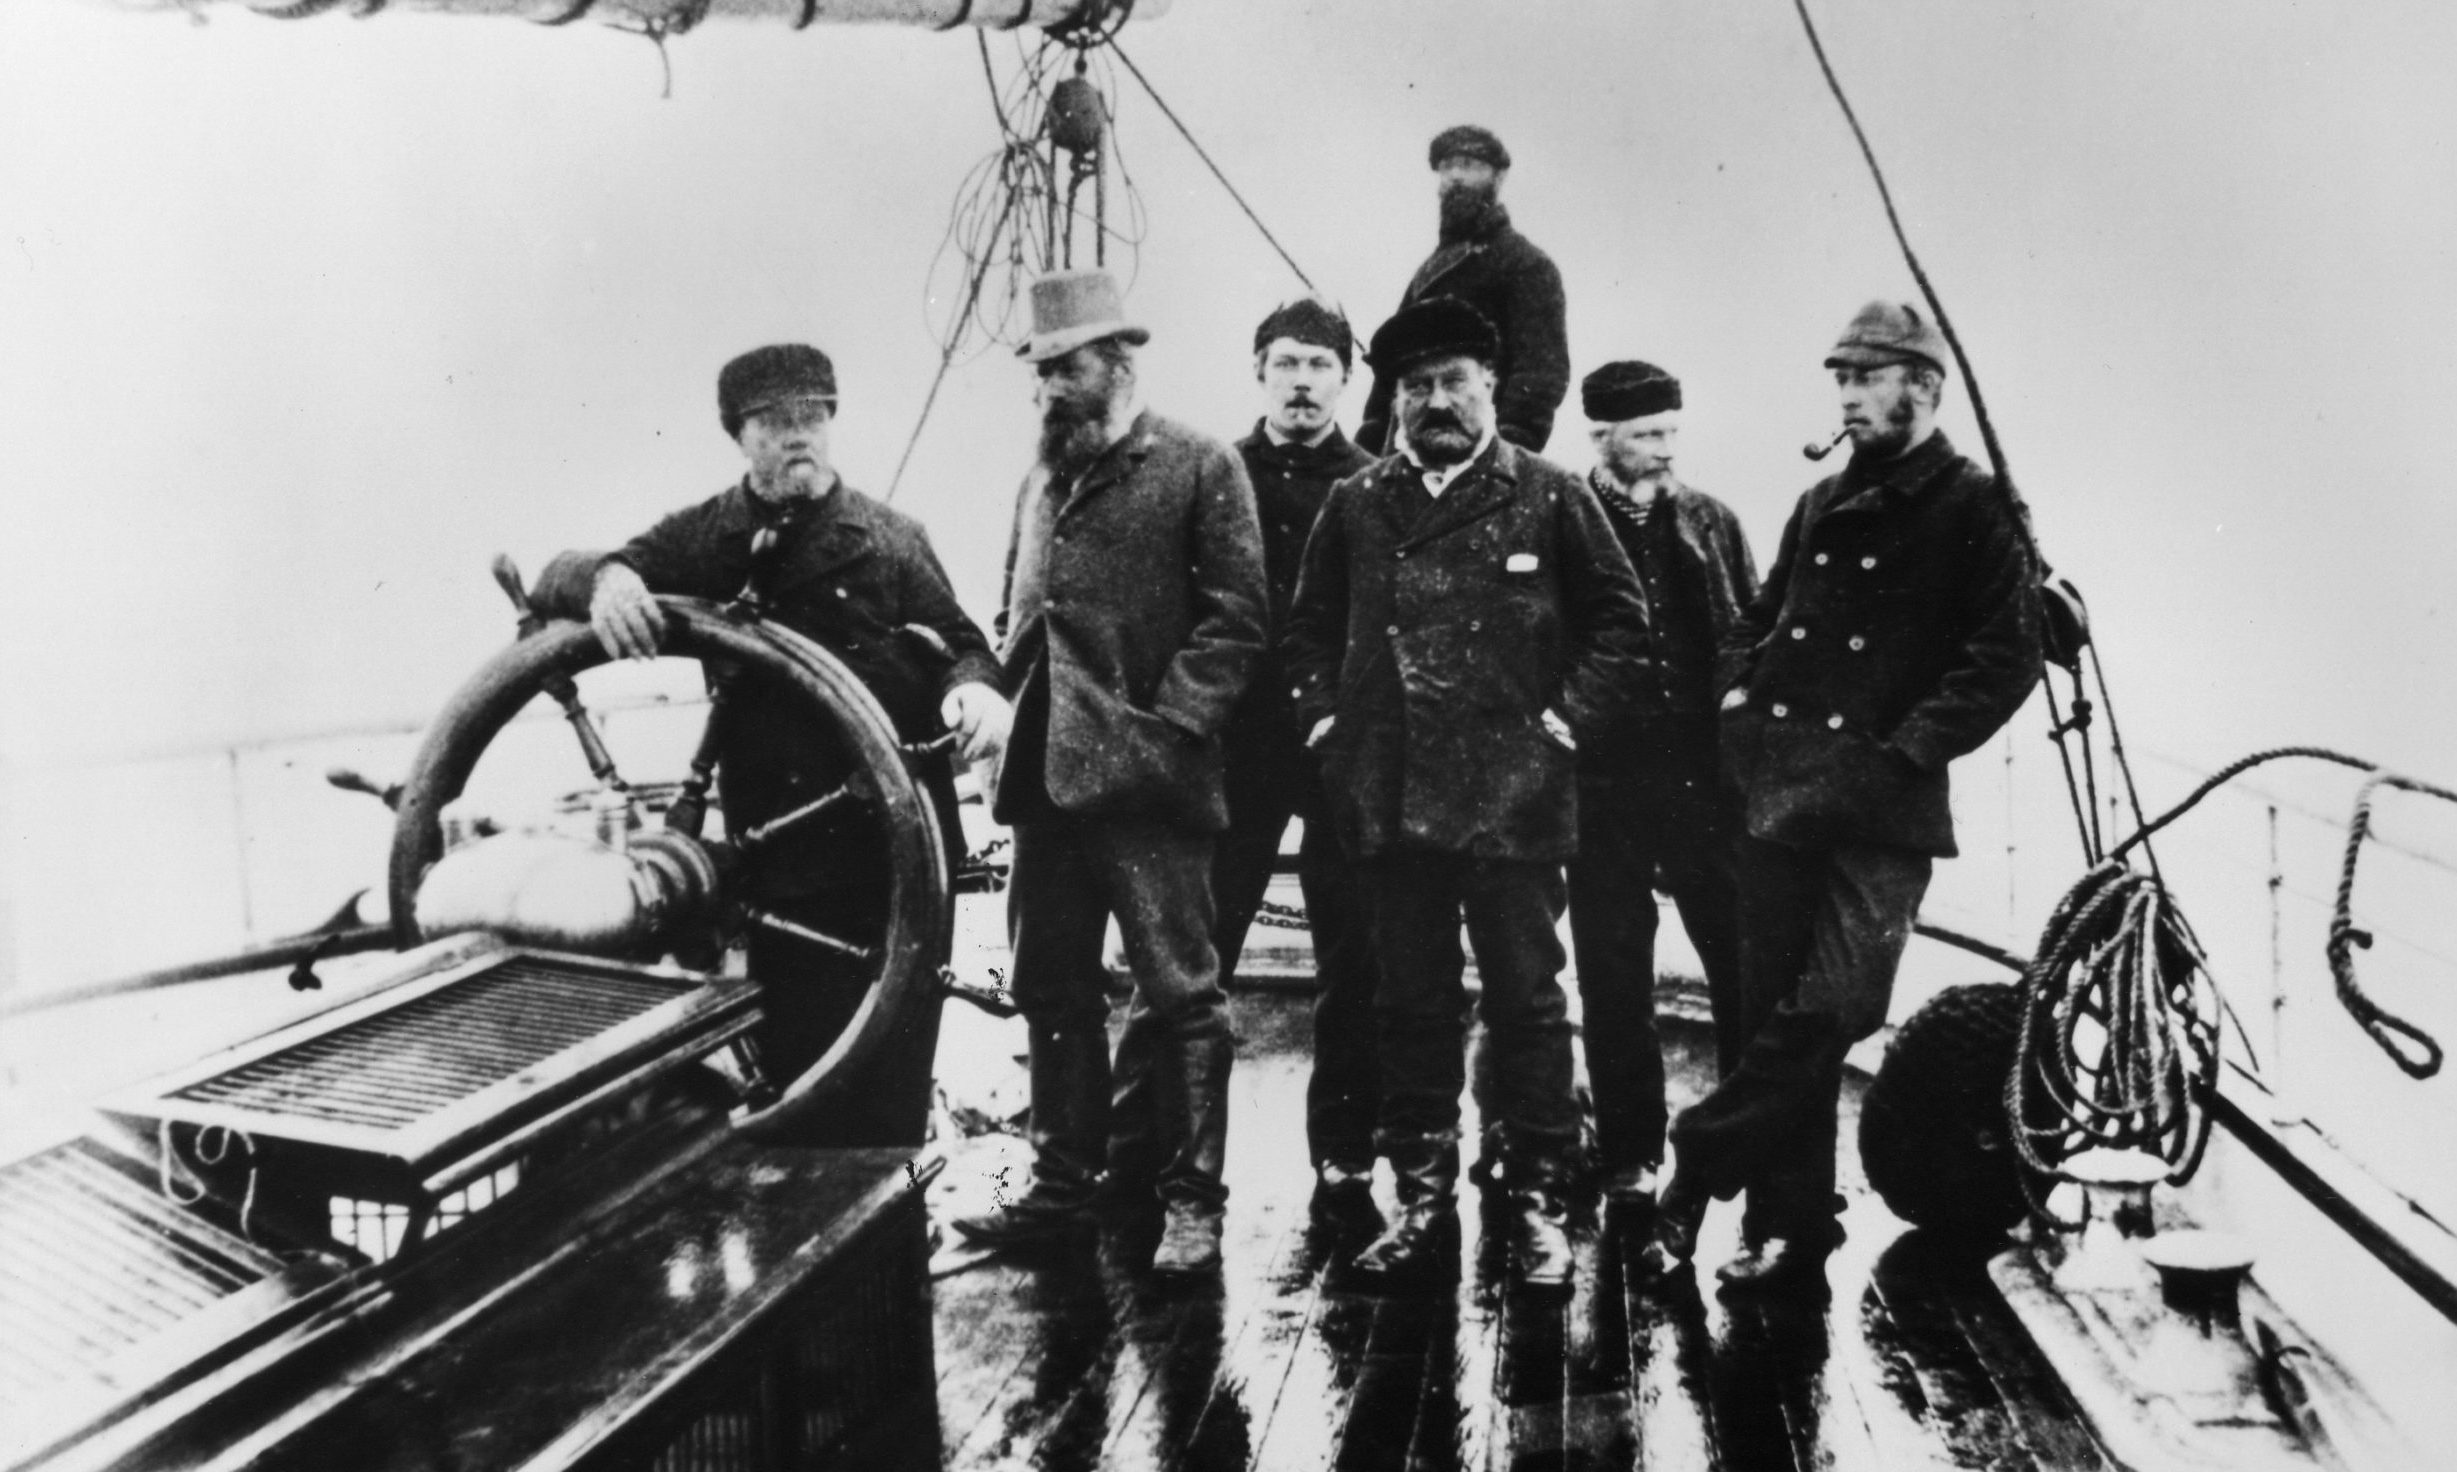 A young Arthur Conan Doyle on the Peterhead whaling ship 'Hope'.